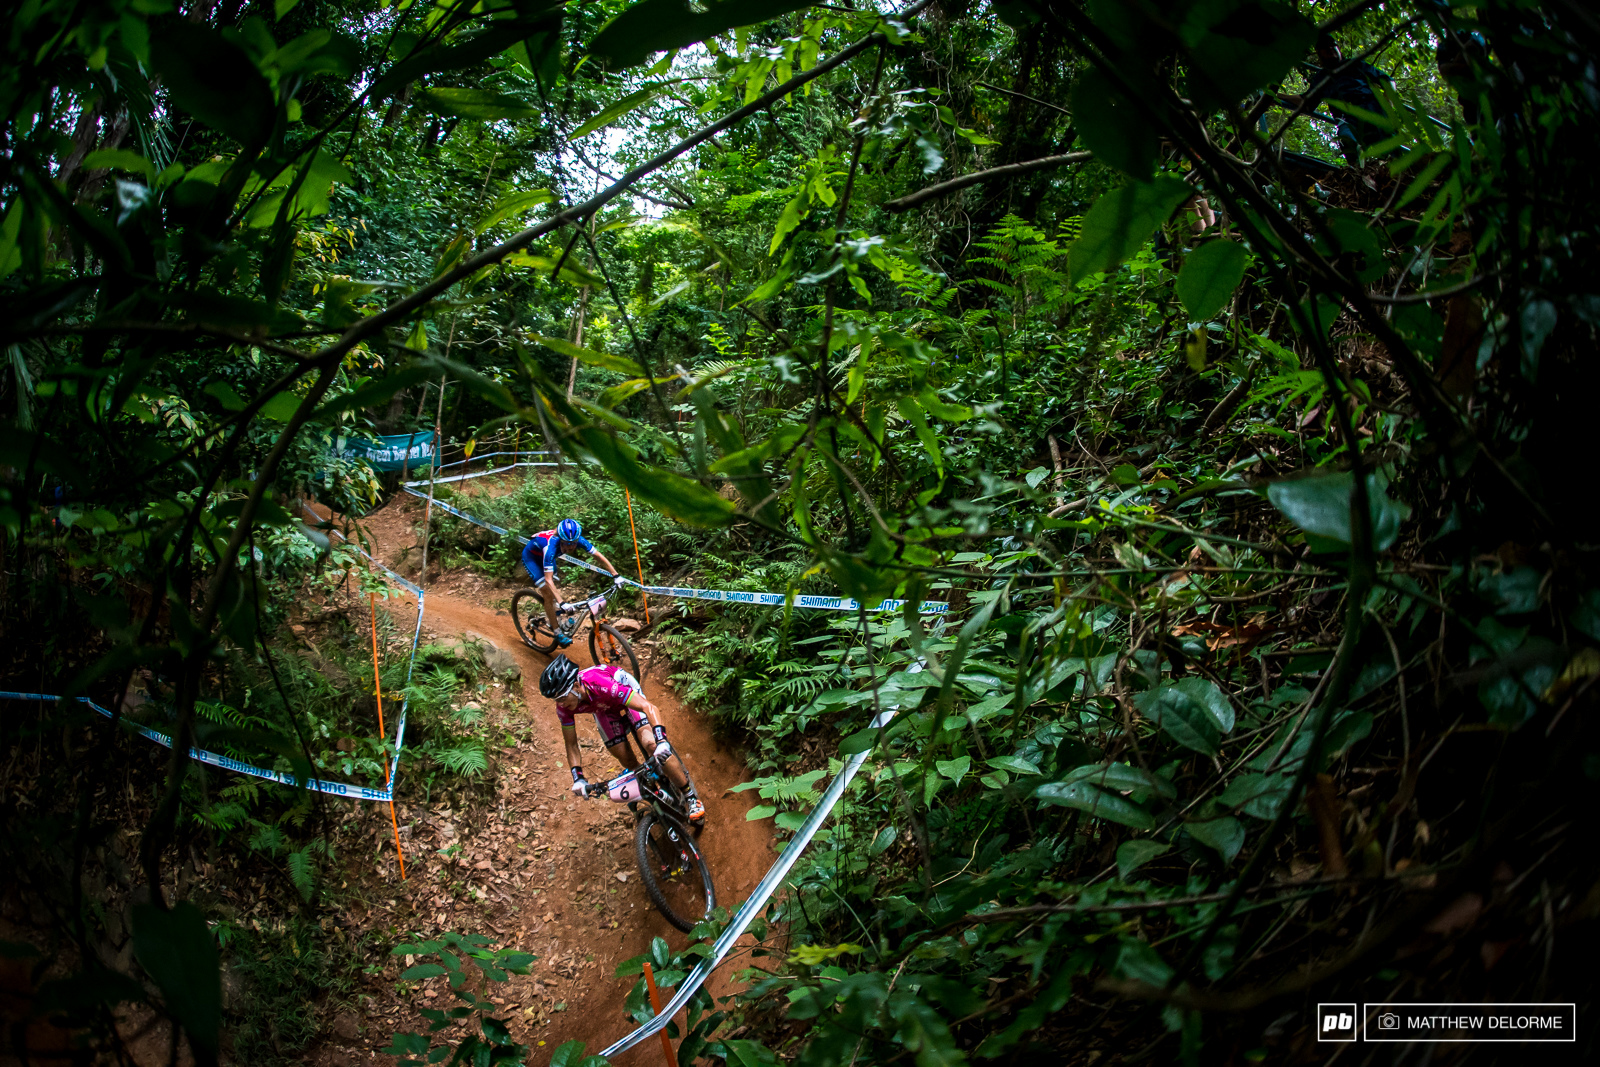 Sabine Spitz weaving her way through the leafbro to a fifth place finish.